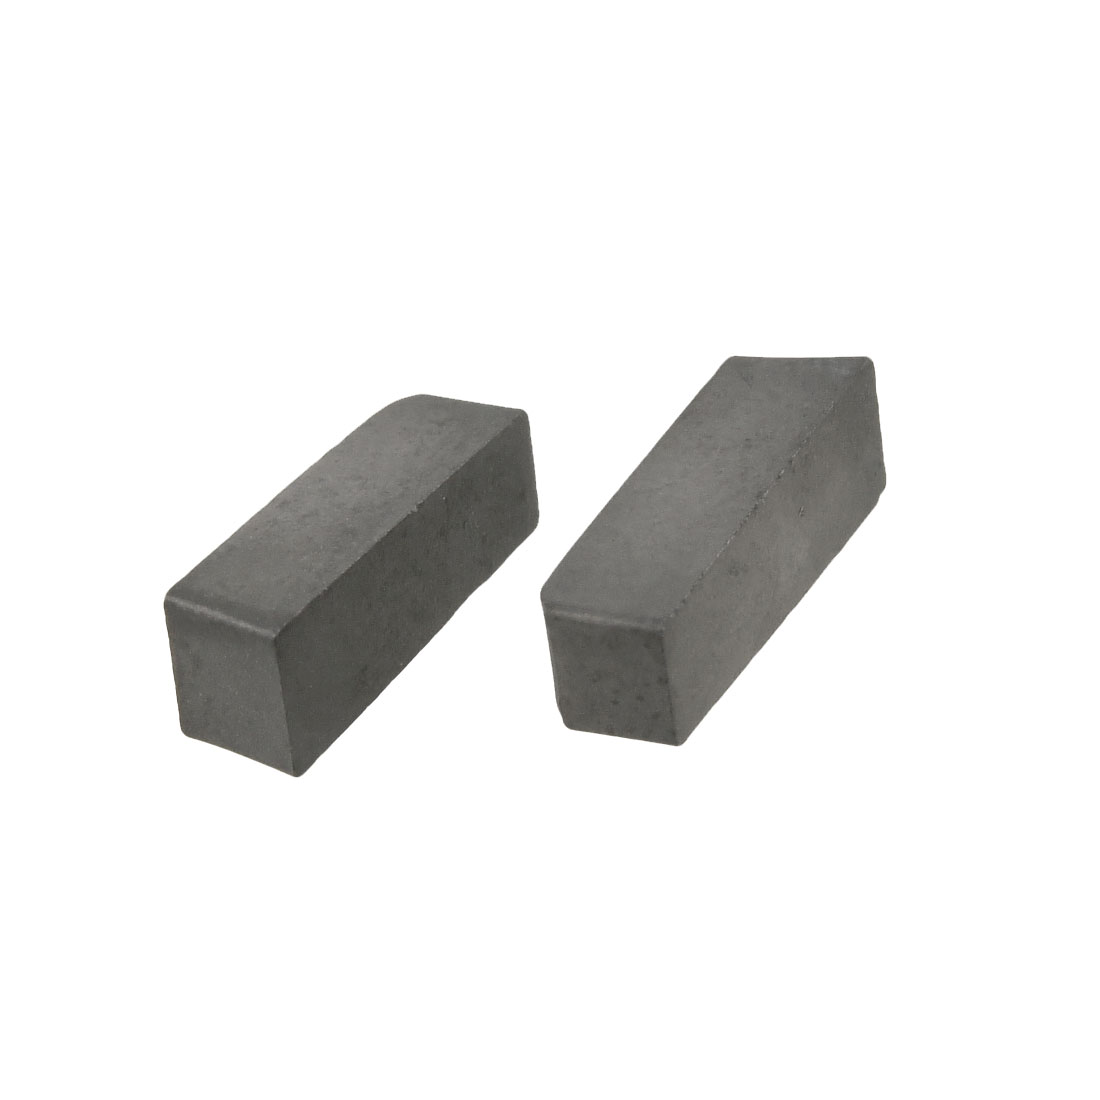 2-Pcs-Square-Cemented-Carbide-Tip-for-Stainless-Steel-Incision